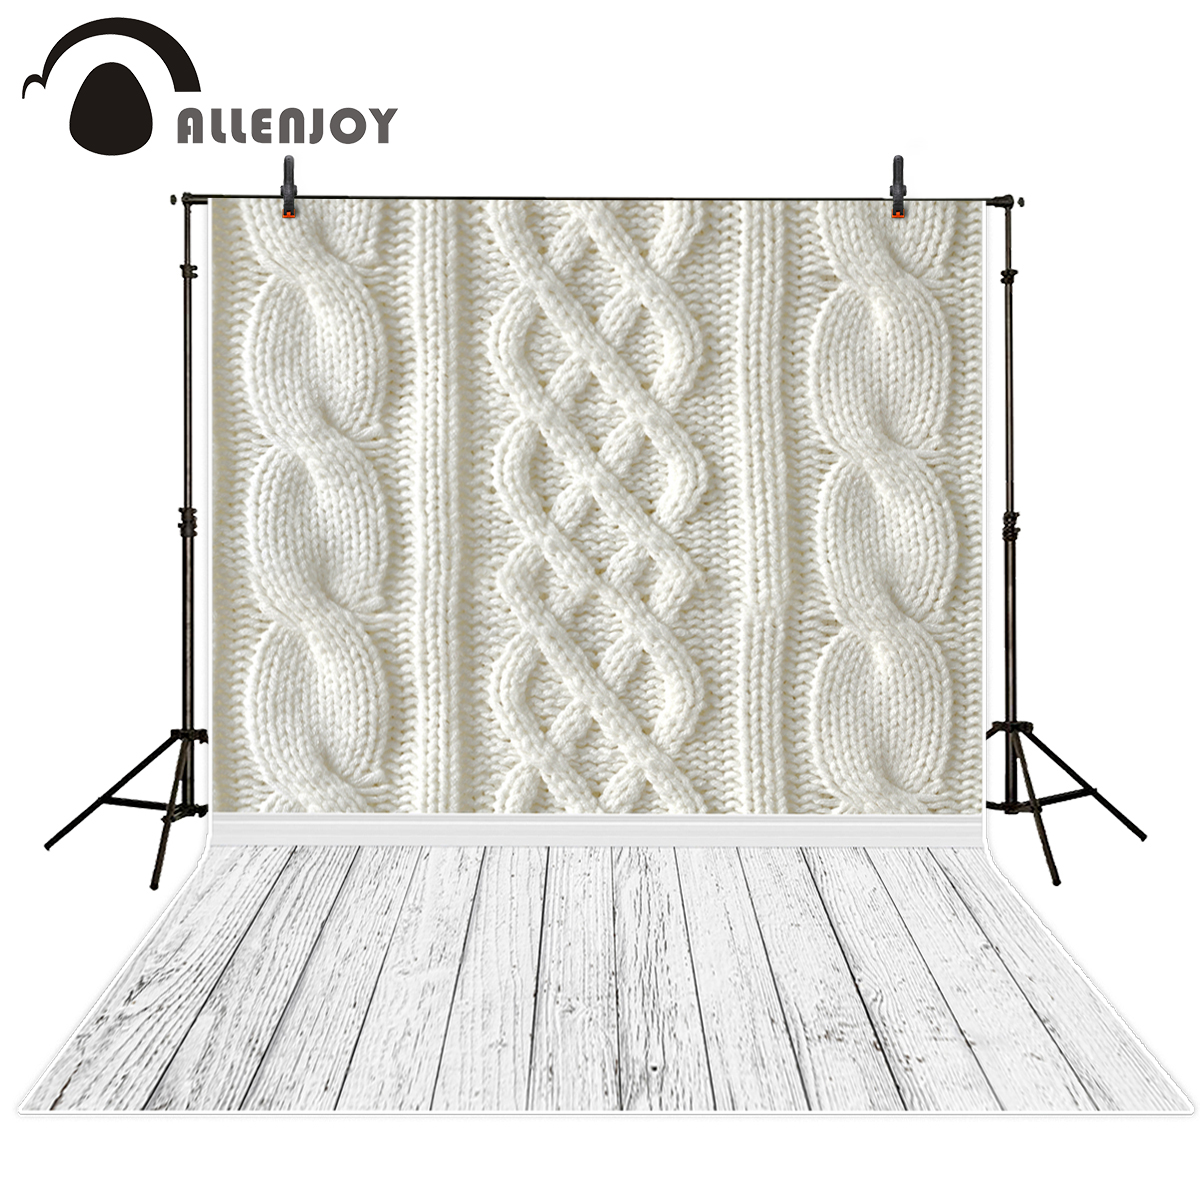 Allenjoy photography backdrops White wool yarn pattern and wood floor backgrounds for photo studio photography backdrop vinyl allenjoy photography backdrops love white wood board floor red hearts branches valentine s day wedding photo booth profissional